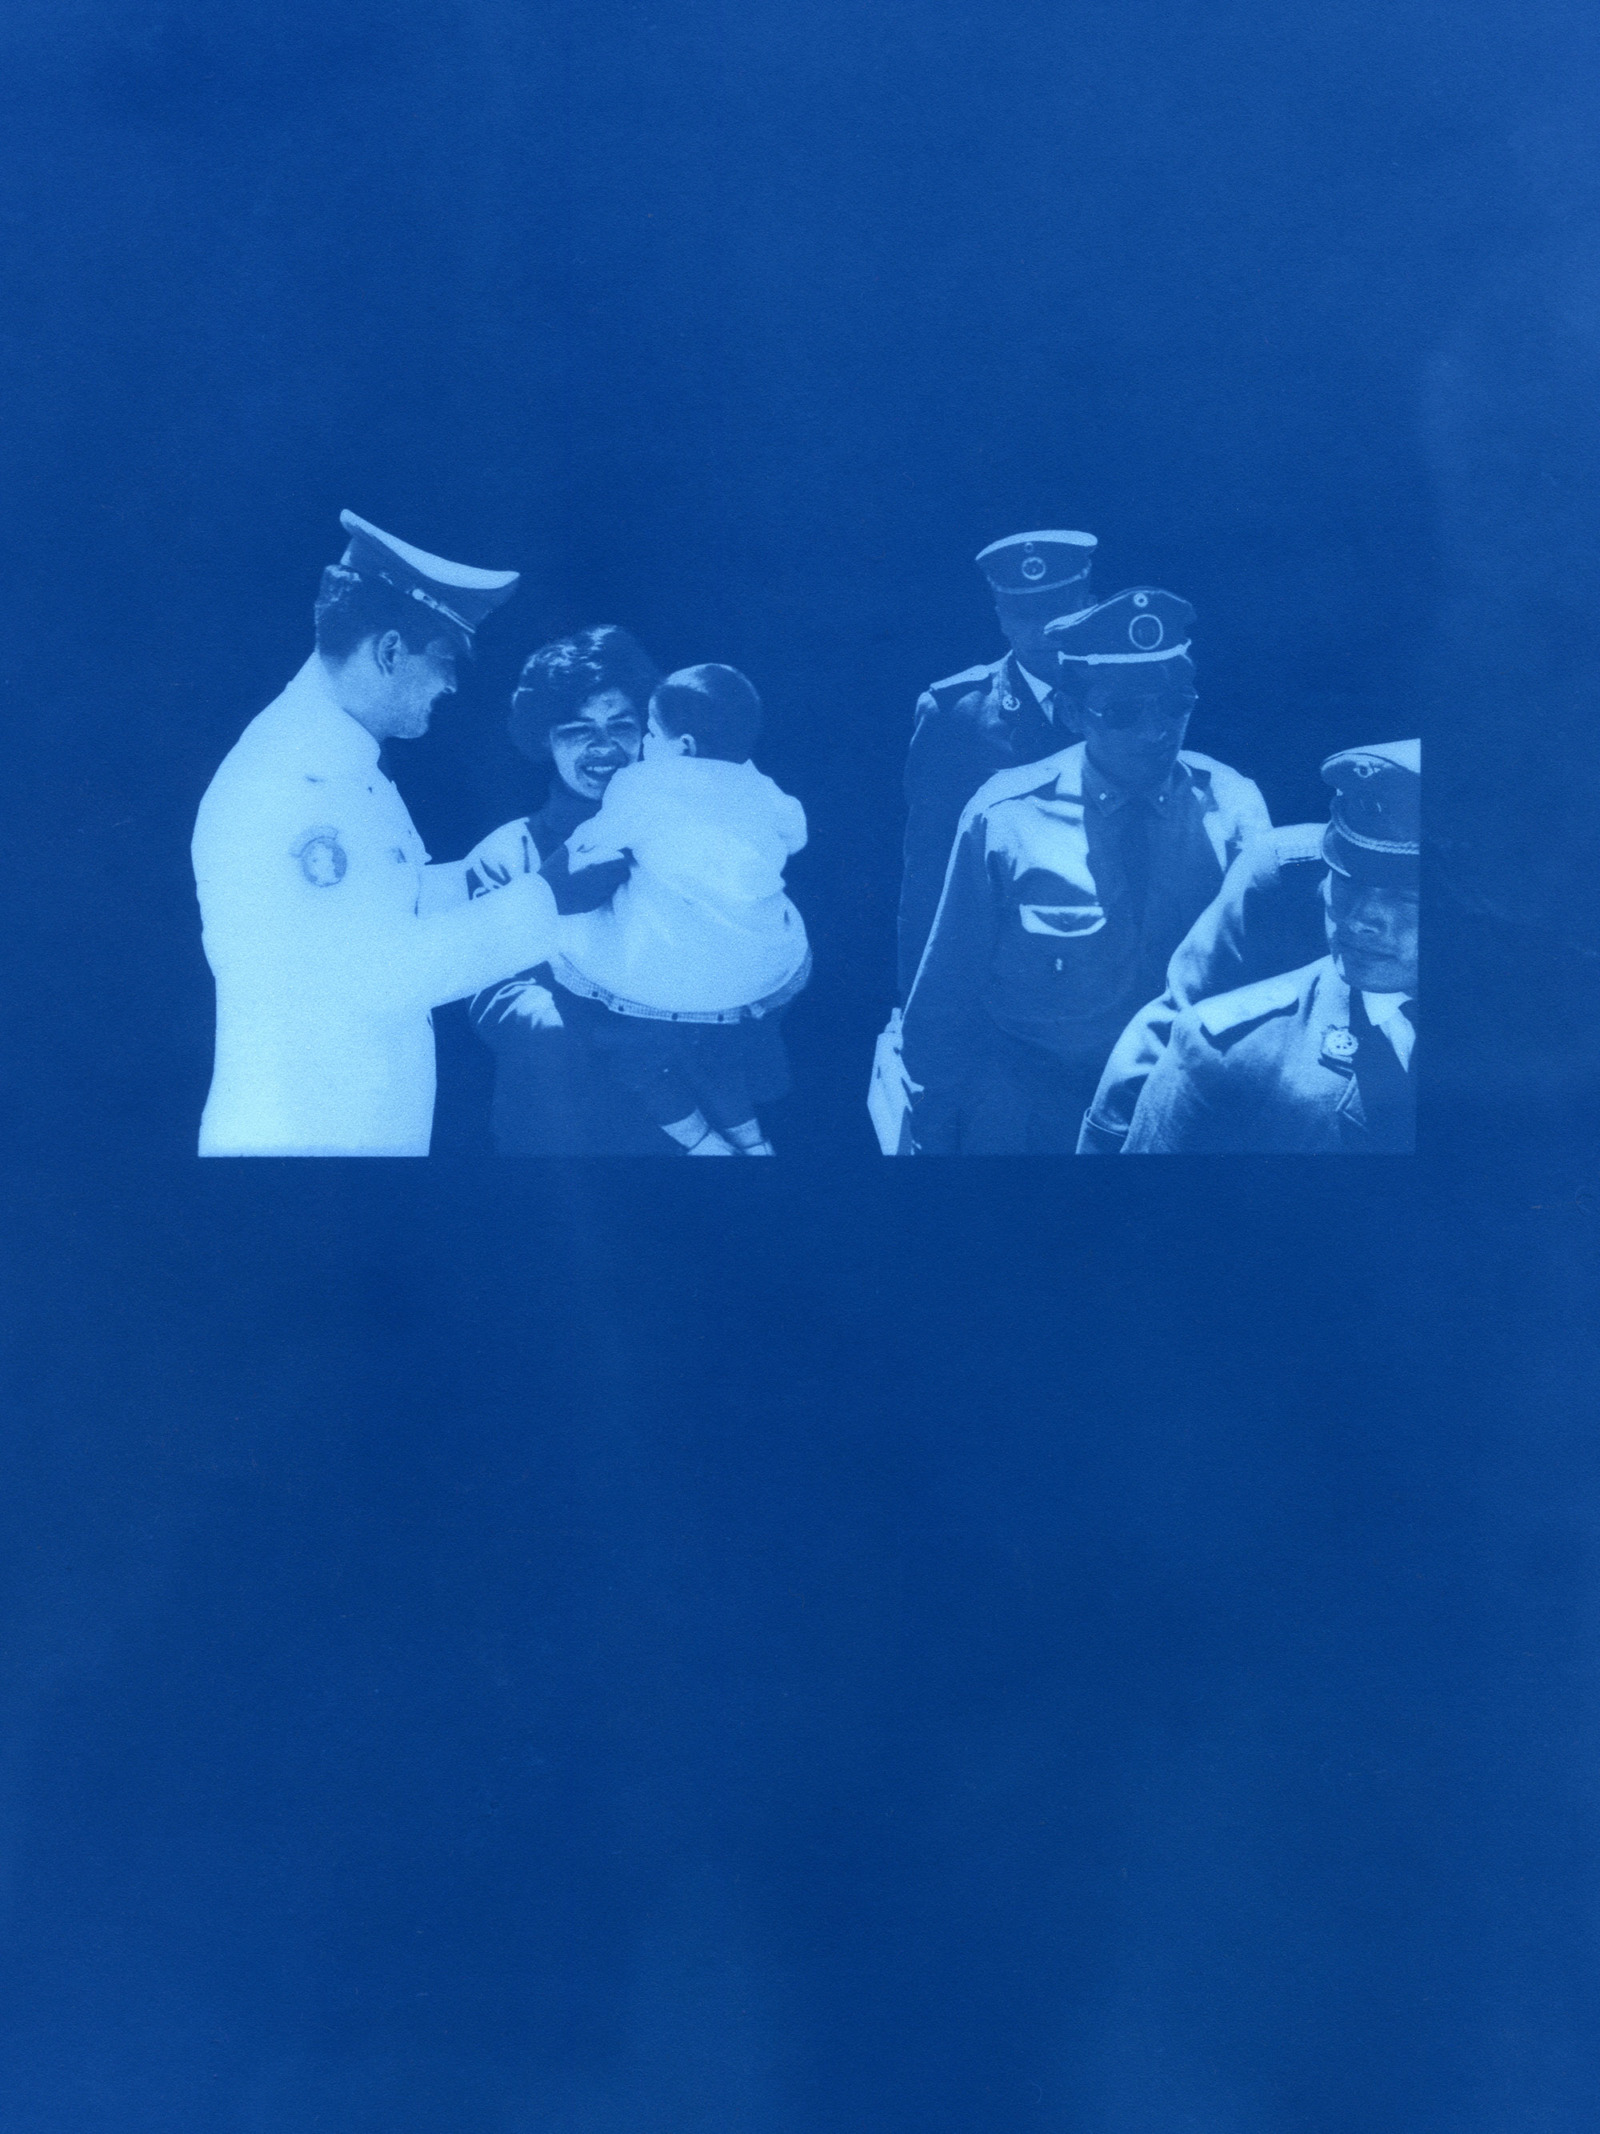 A cyanotype copy of another photograph. A mother holds a baby while military men walk past her.